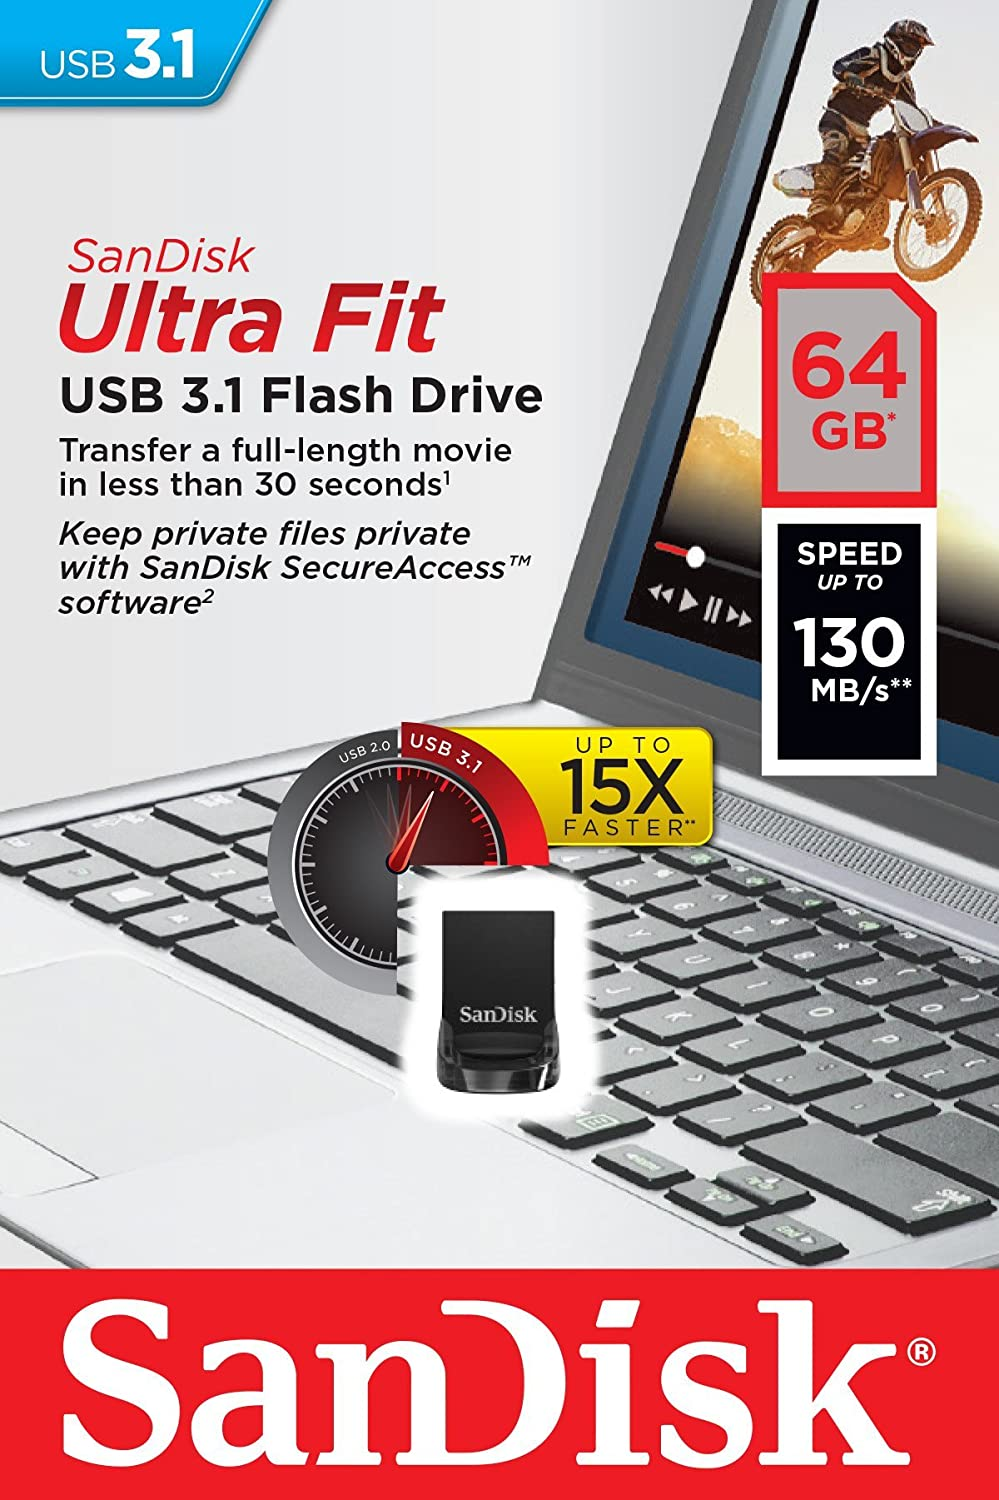 Memoria Flash USB 3.1 SanDisk Ultra Fit de 64 GB con hasta 130 MB/s de Velocidad de Lectura